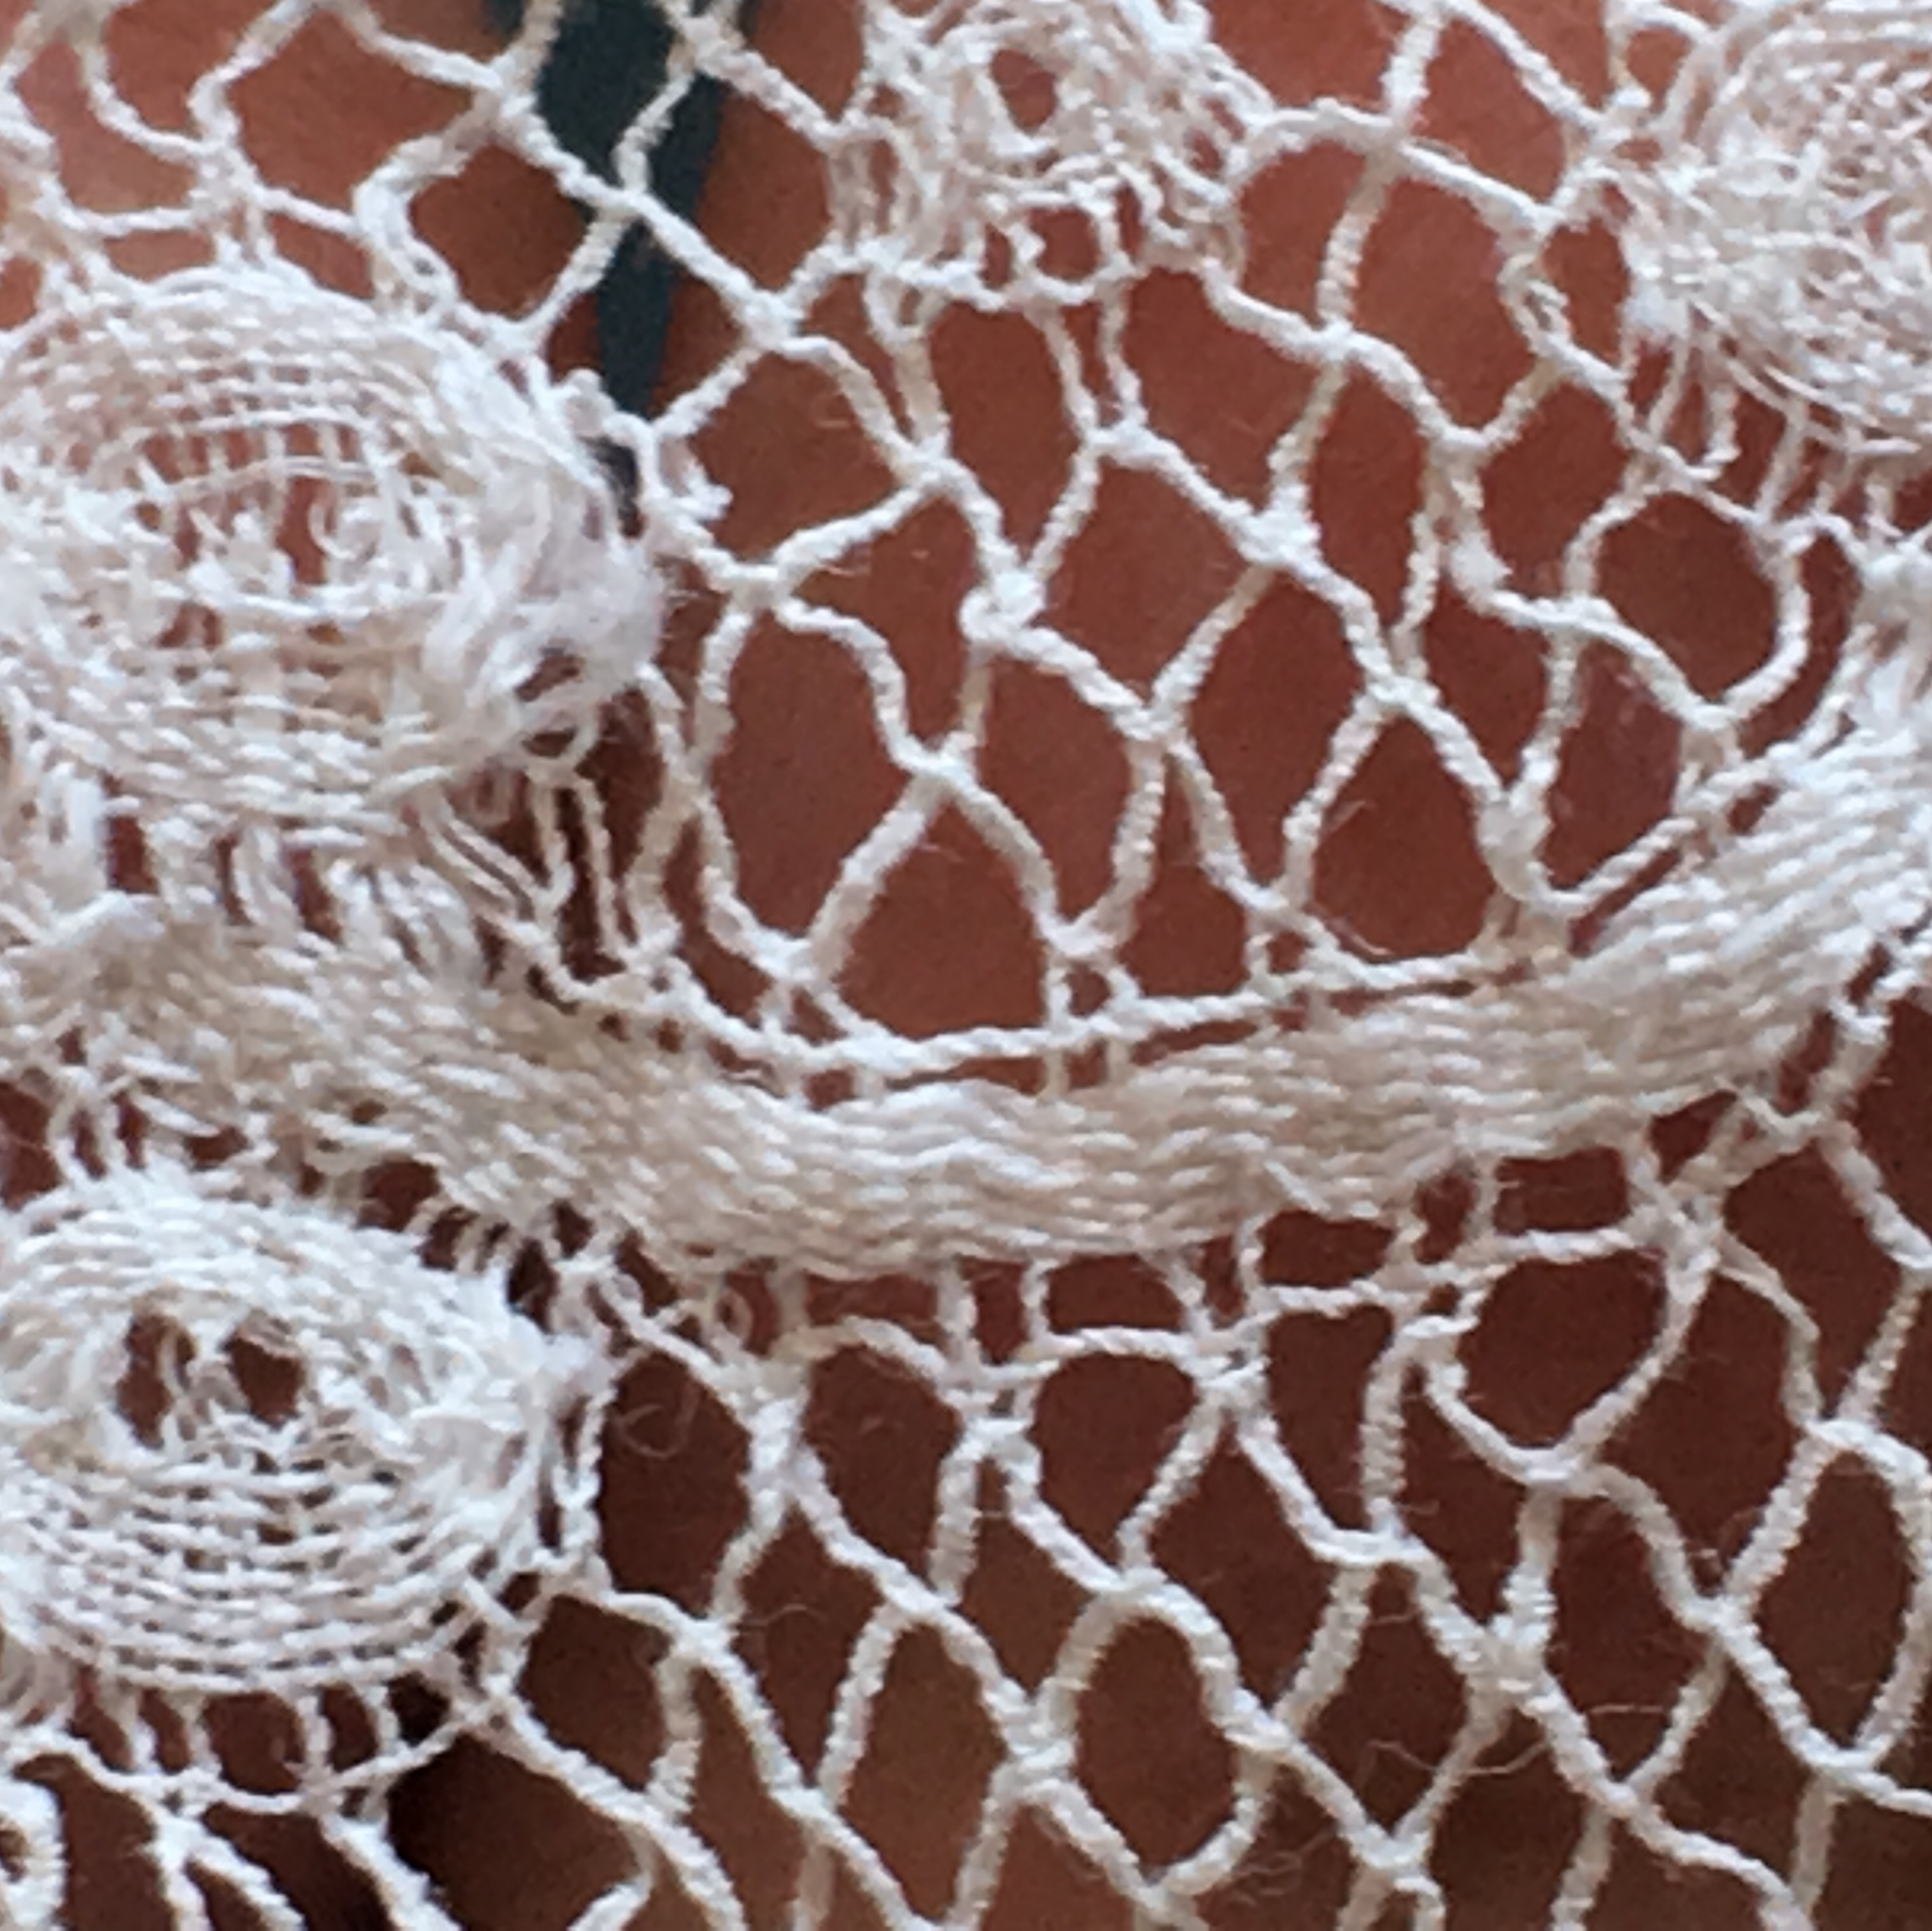 Close up photo of the lace trim of the gown